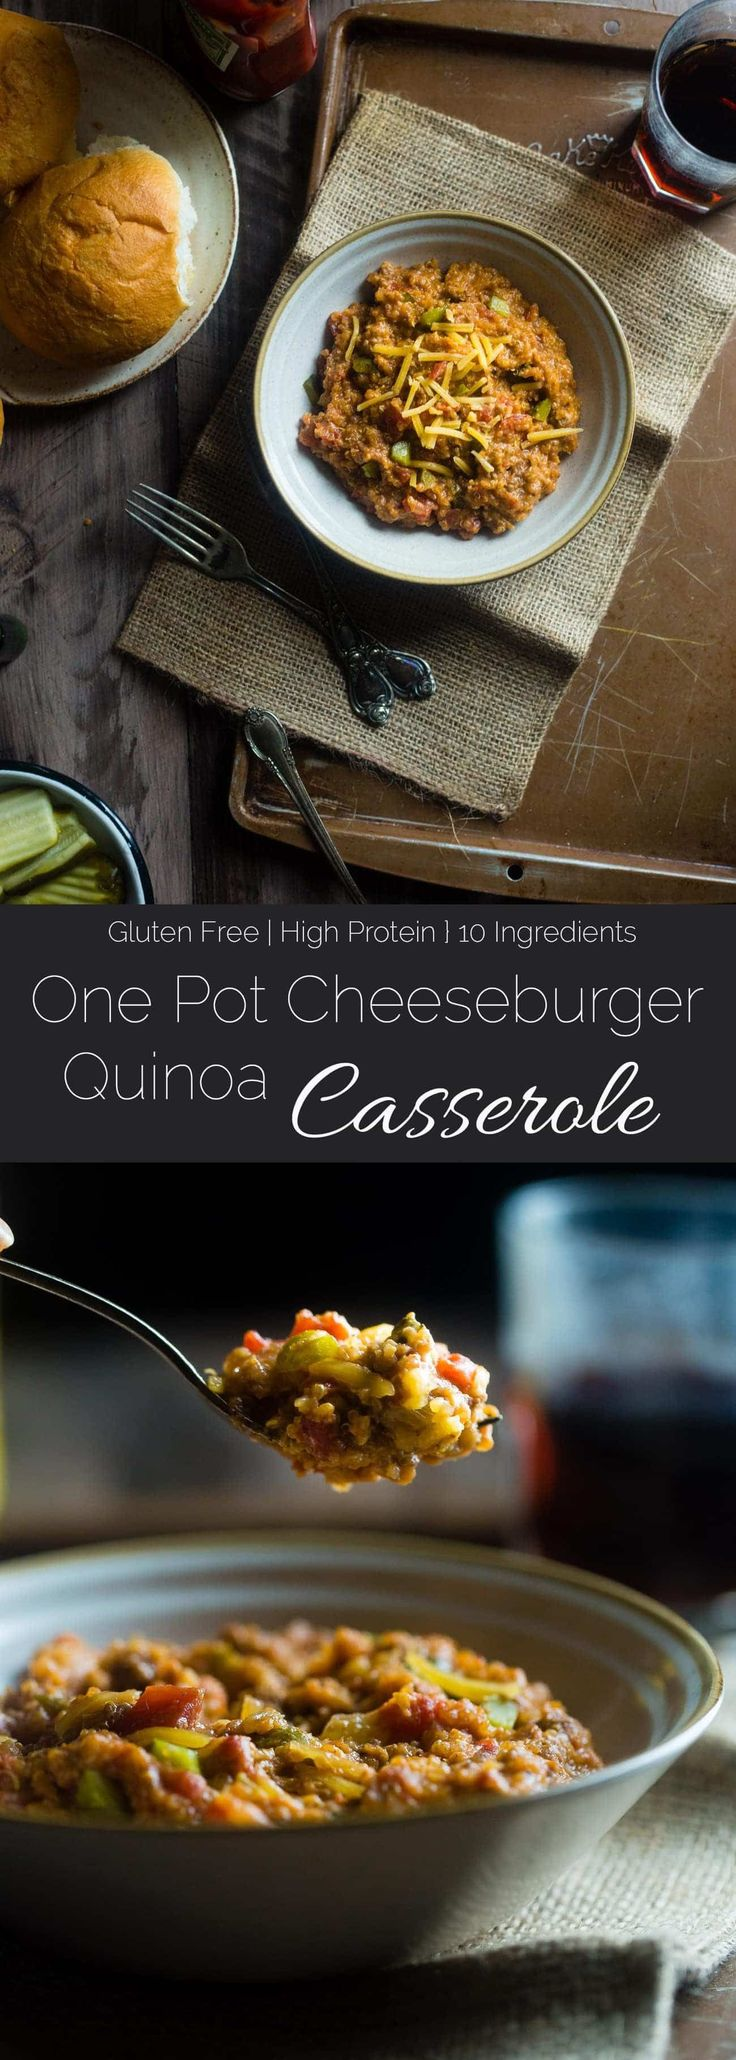 Cheeseburger Quinoa Casserole - This easy, one-pot cheeseburger casserole has all the cheeseburger taste you love but in healthy, gluten free weeknight dinner form! It's under 300 calories too! | Foodfaithfitness.com | @FoodFaithFit via @FoodFaithFit